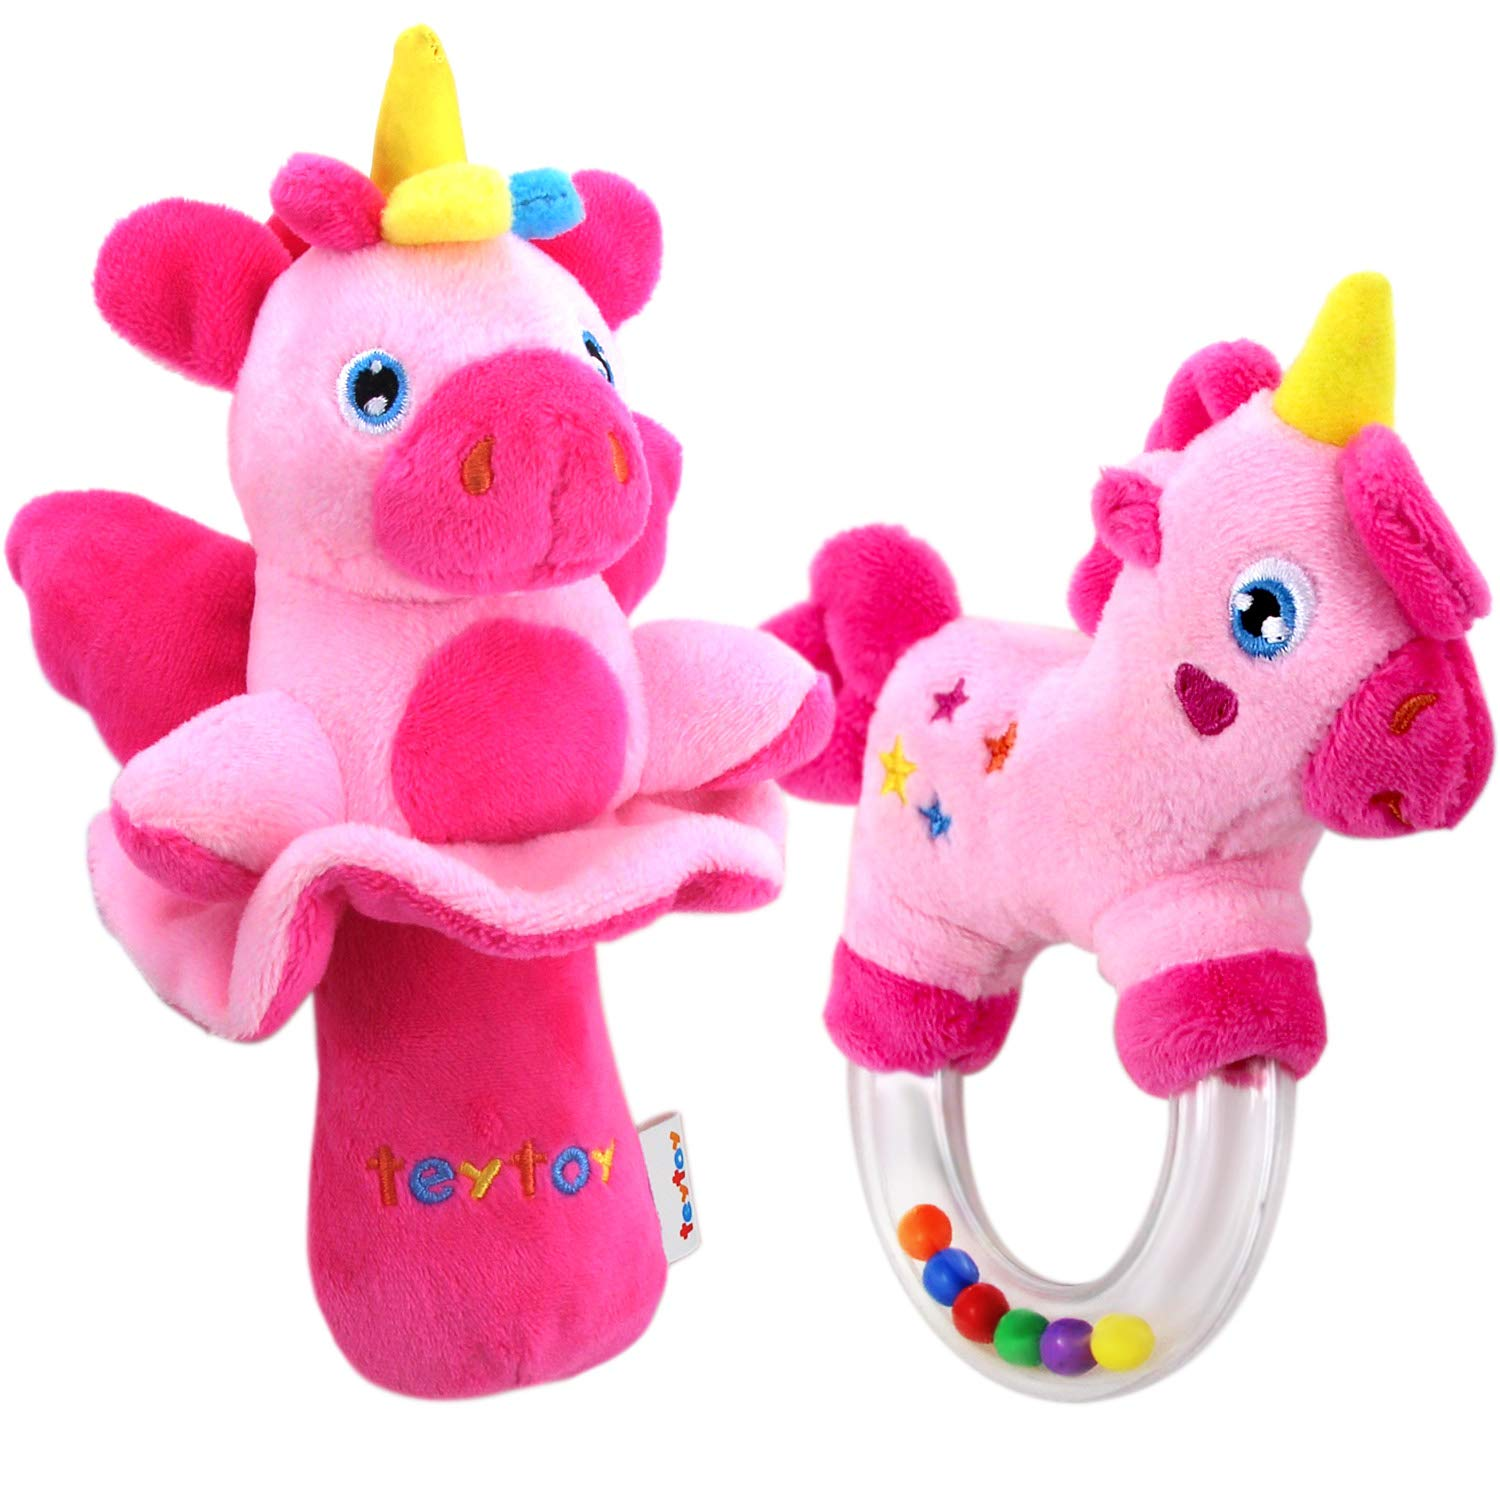 teytoy My First Rattle, 2pcs Soft Baby Rattles Set, Pink Horse and Angel Pig Nontoxic Baby Girl Toys for Infants Stroller Bedtime, Perfect Newborn Baby Shower Present for 0 3 6 12 Month